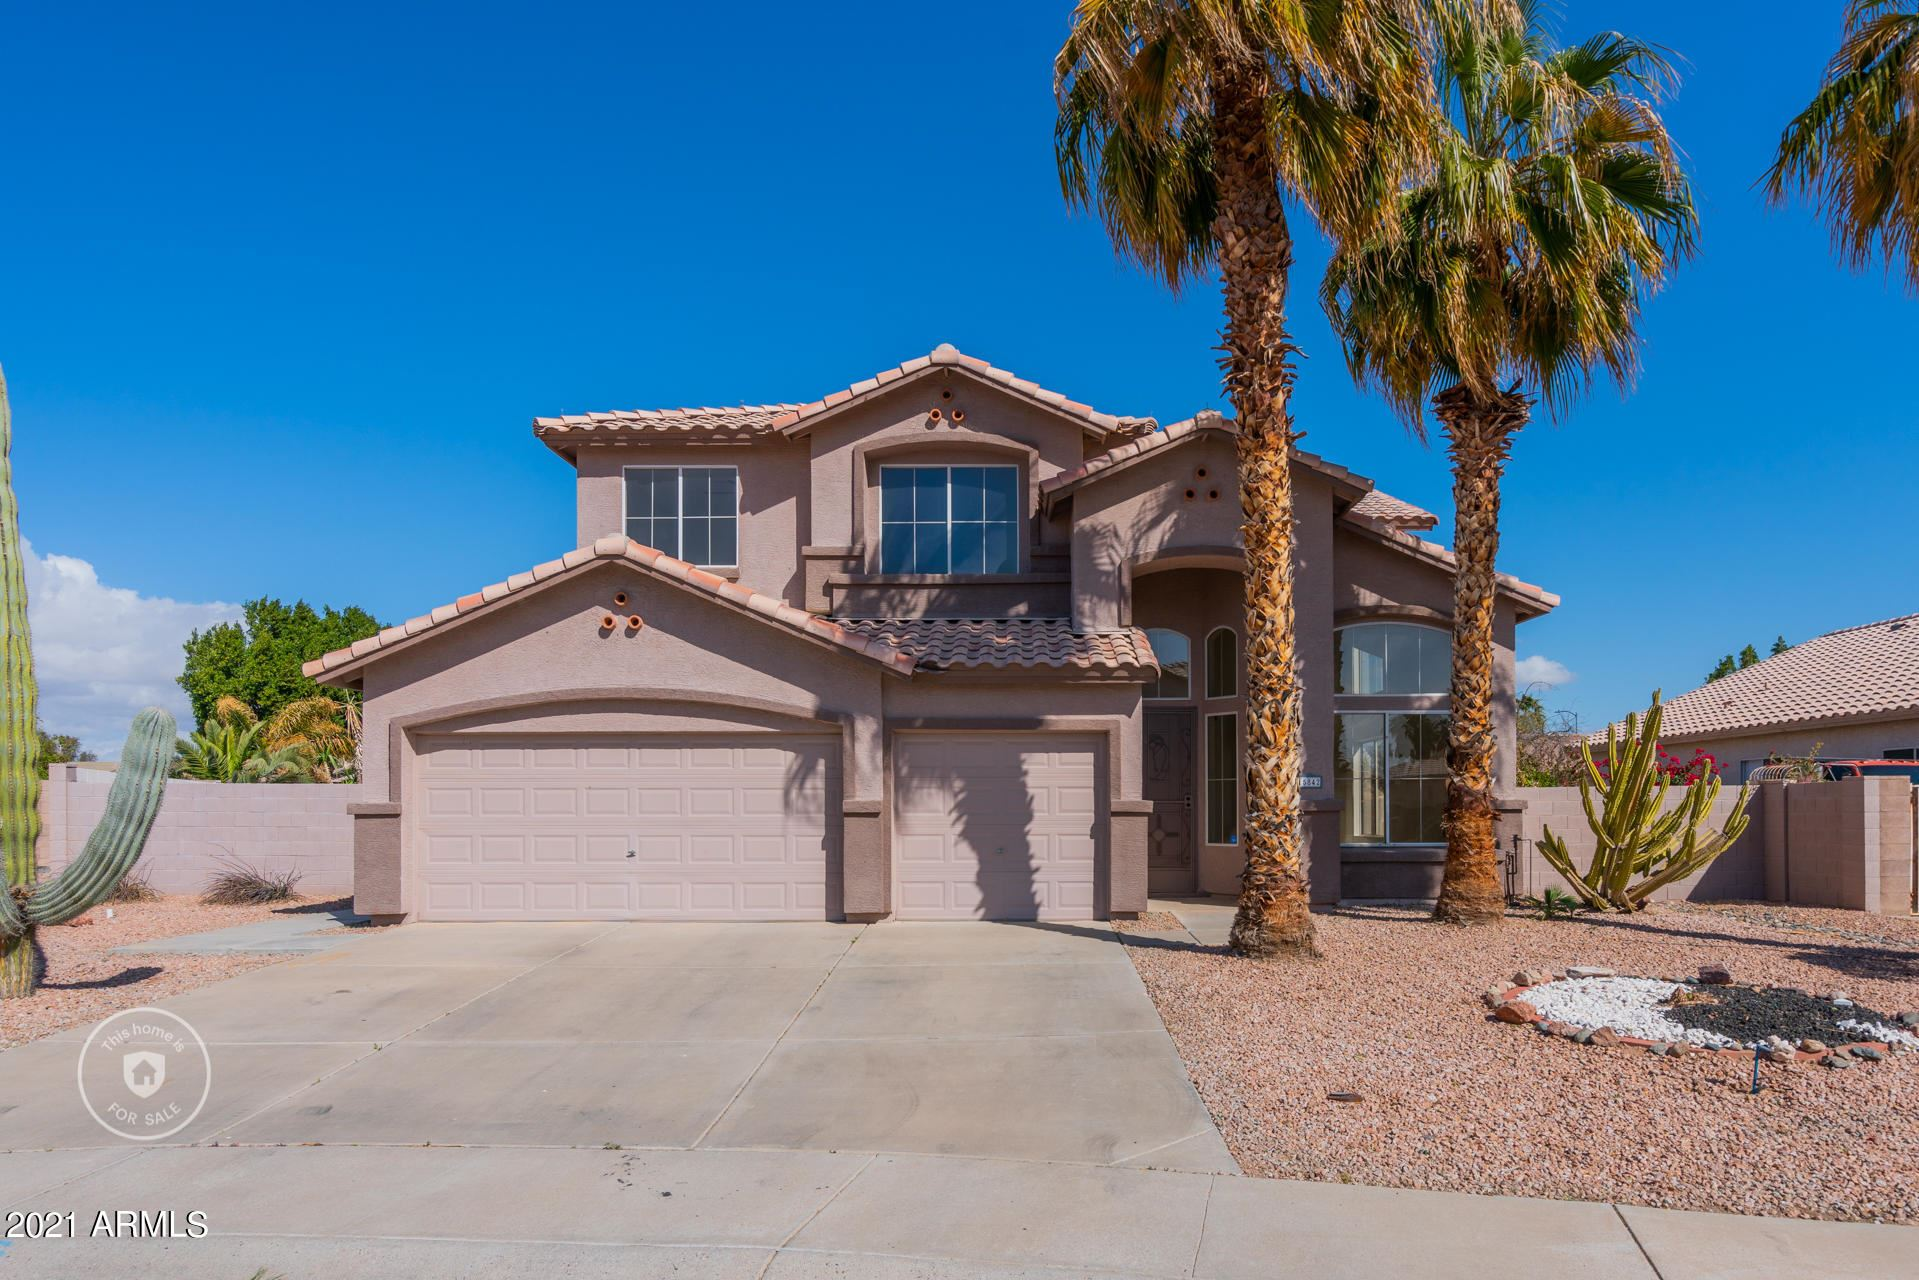 Photo of 15842 W DURANGO Street, Goodyear, AZ 85338 (MLS # 6202473)